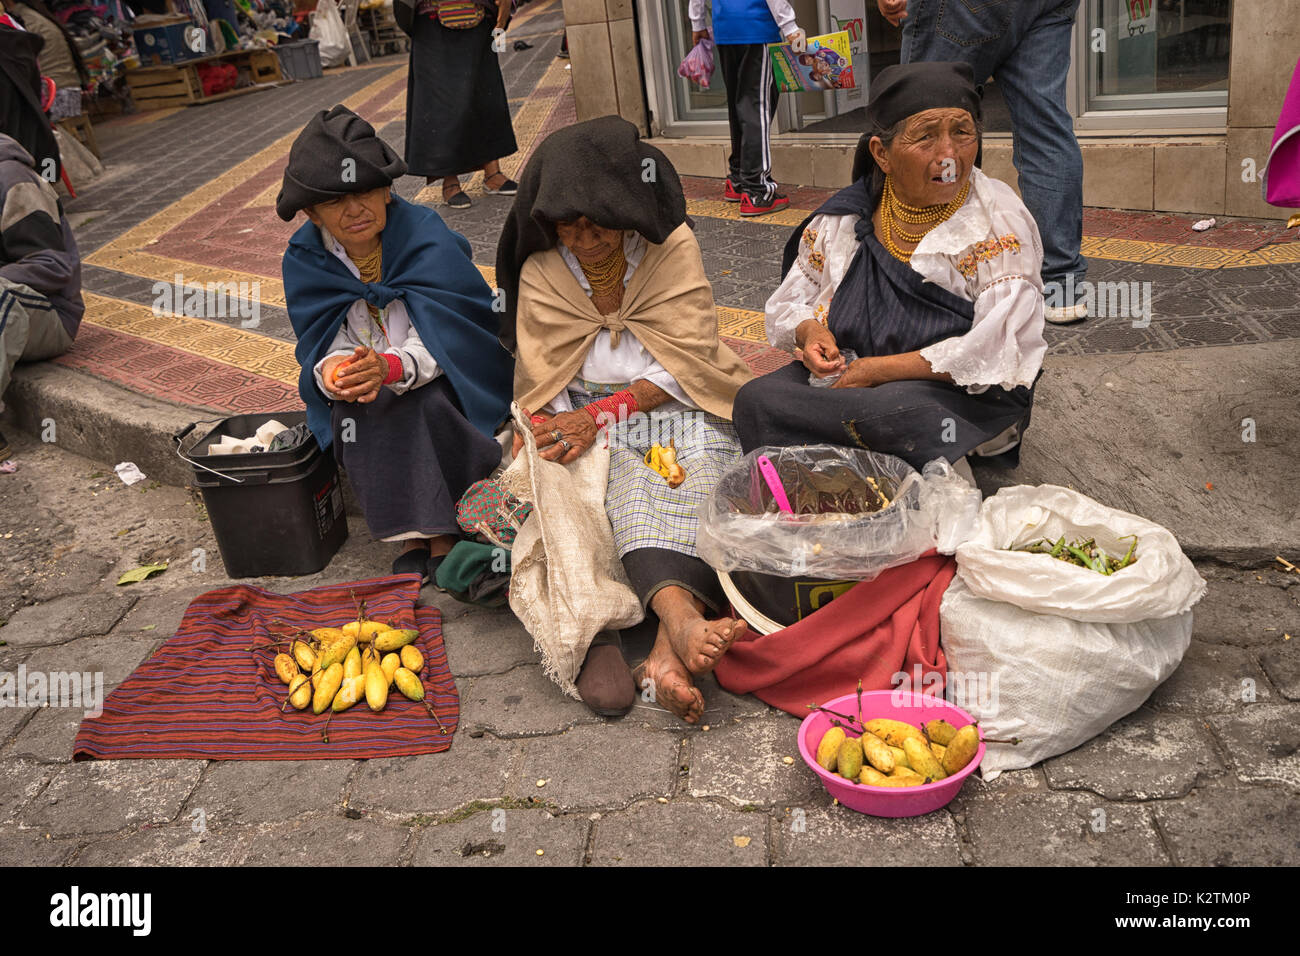 April 29, 2017 Otavalo, Ecuador: indigenous quechua people selling prduce from the ground on the street in the Saturday Stock Photo